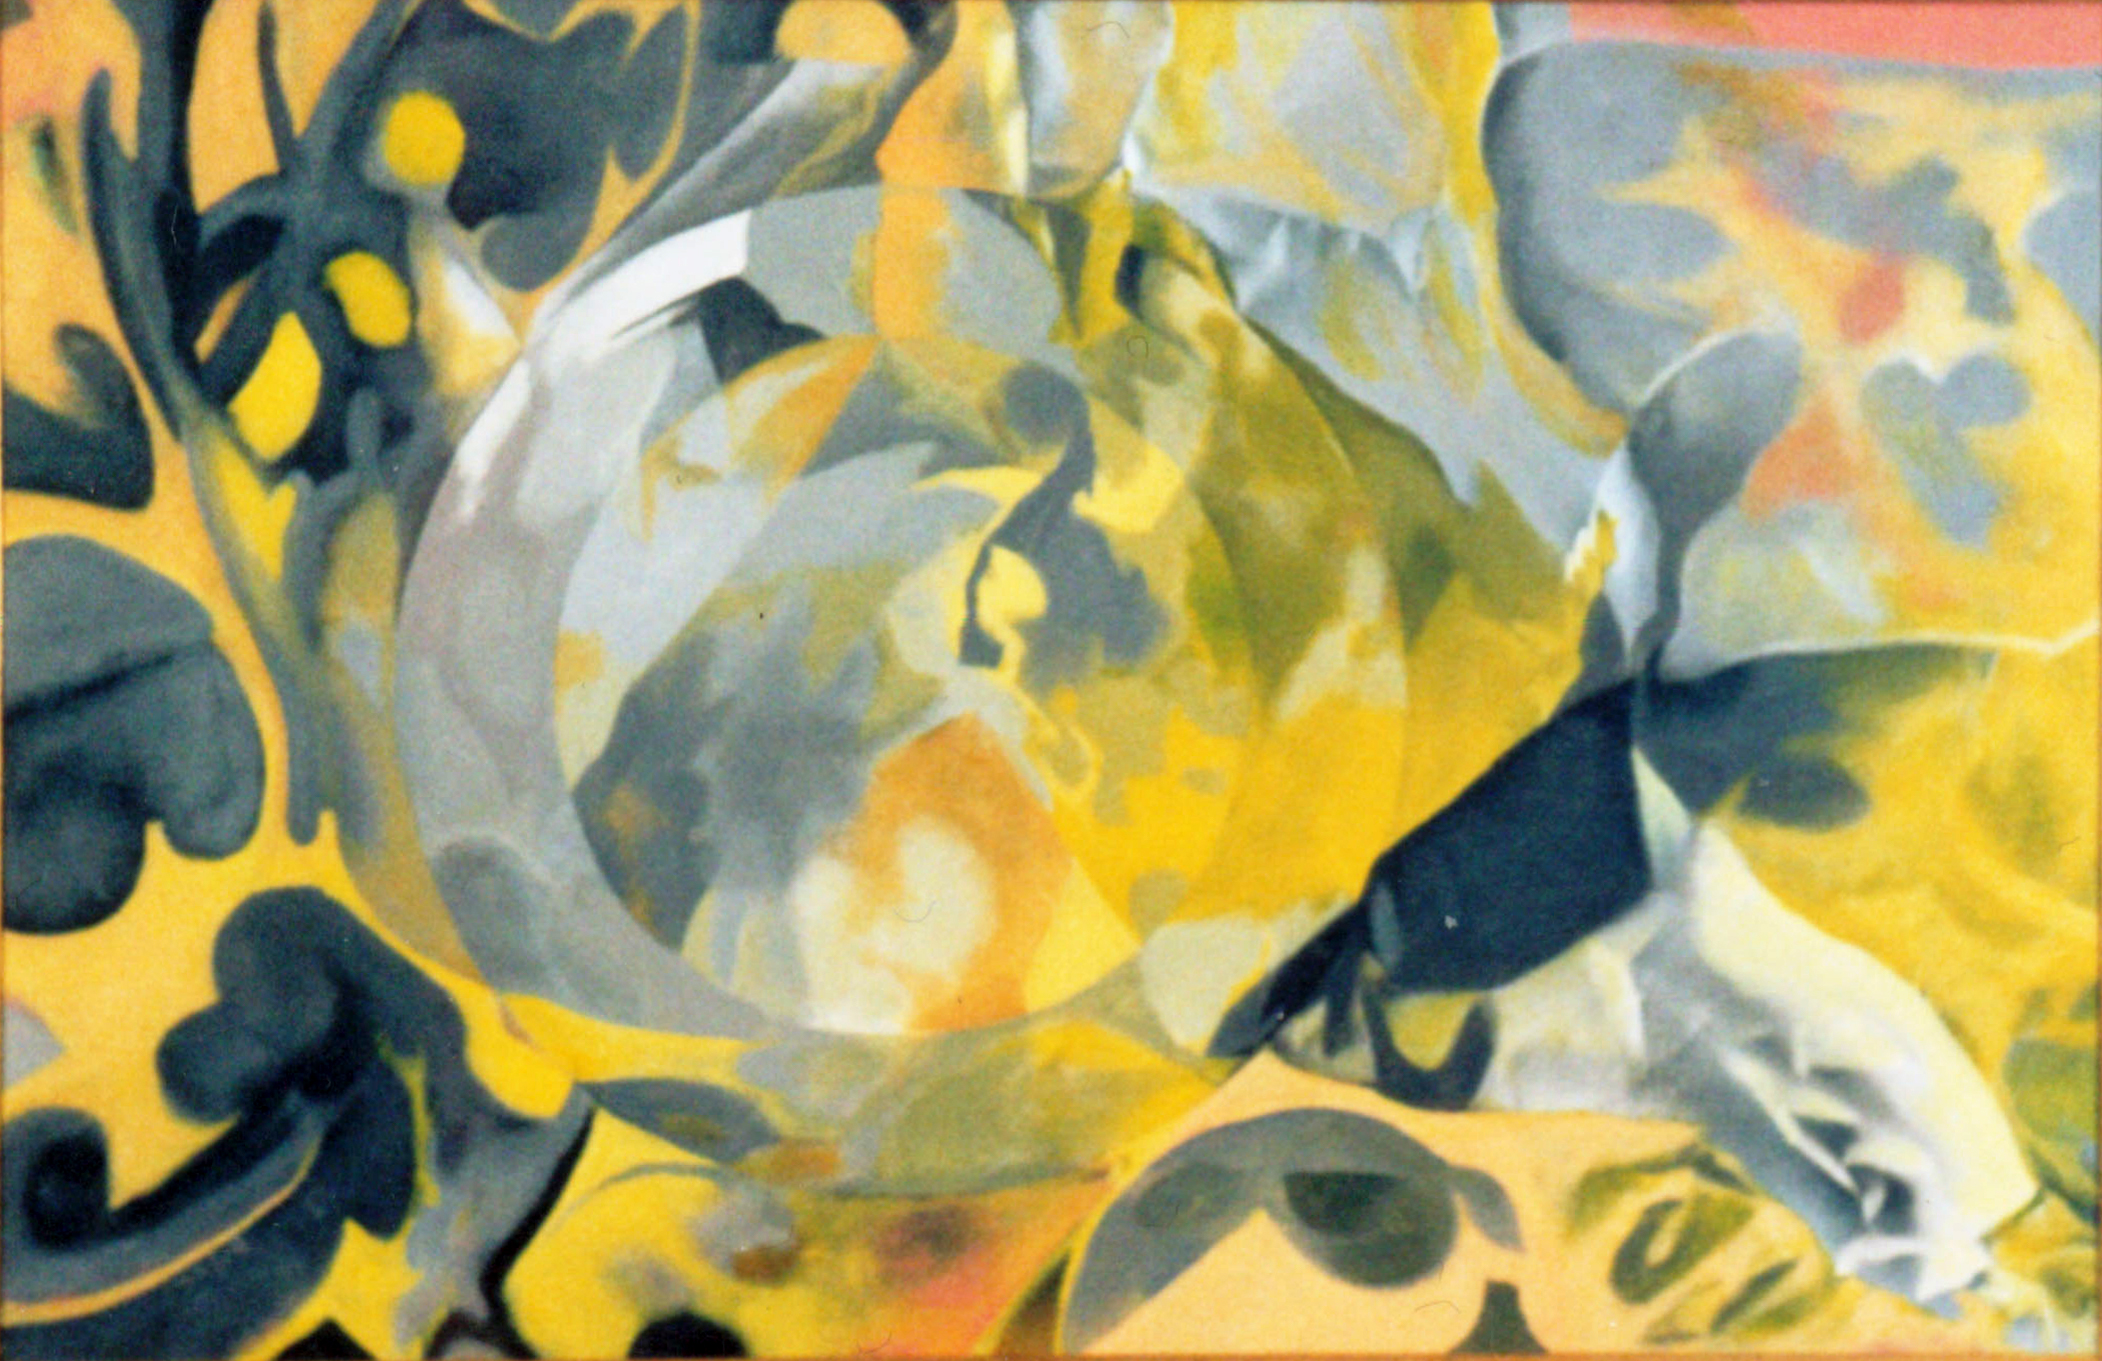 Grey and Yellow, 1987, acrylic on canvas, 19